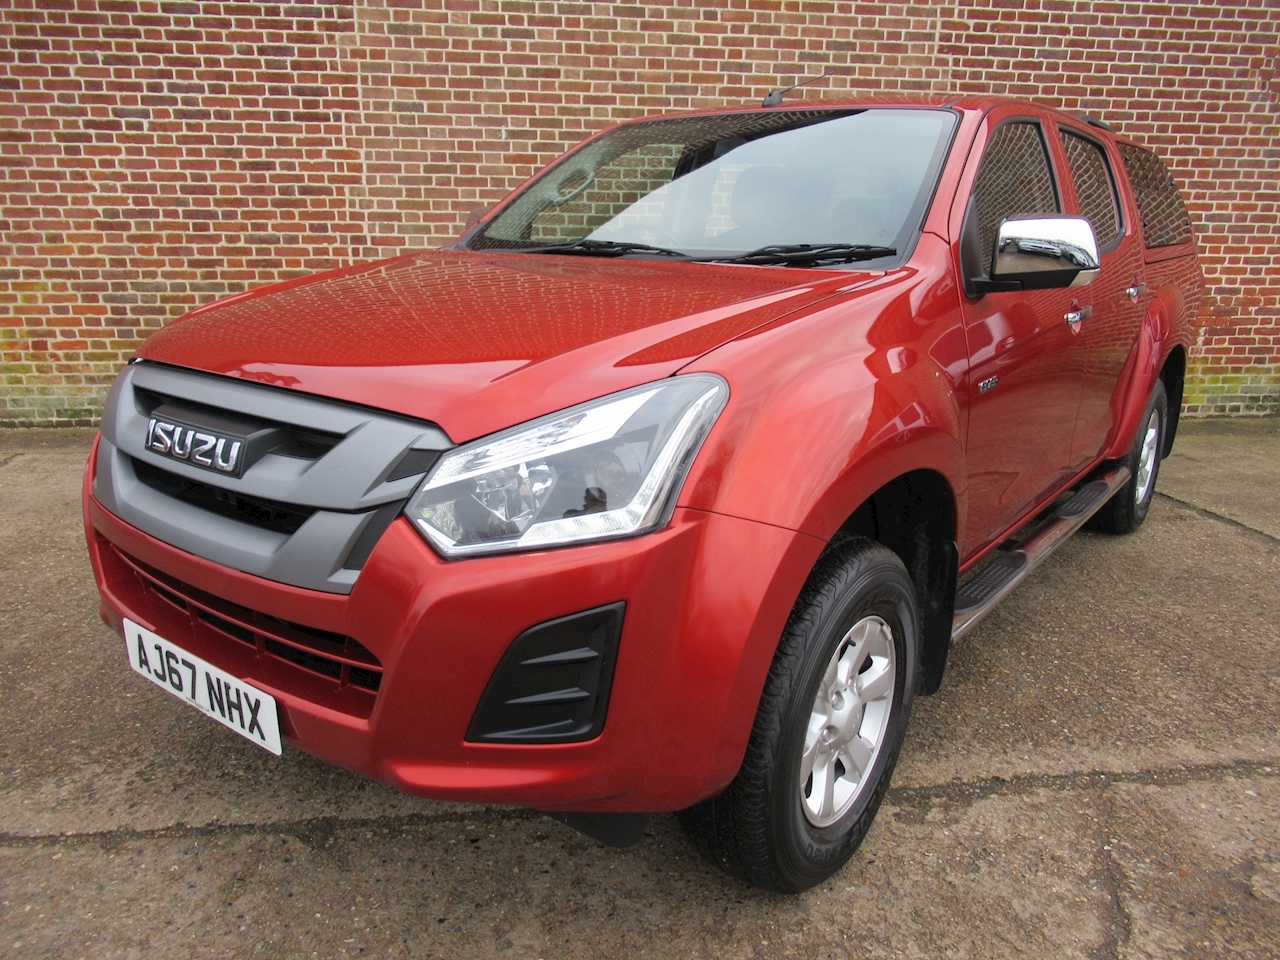 Isuzu D-Max Eiger Dcb 1.9 4dr Pick-Up Manual Diesel